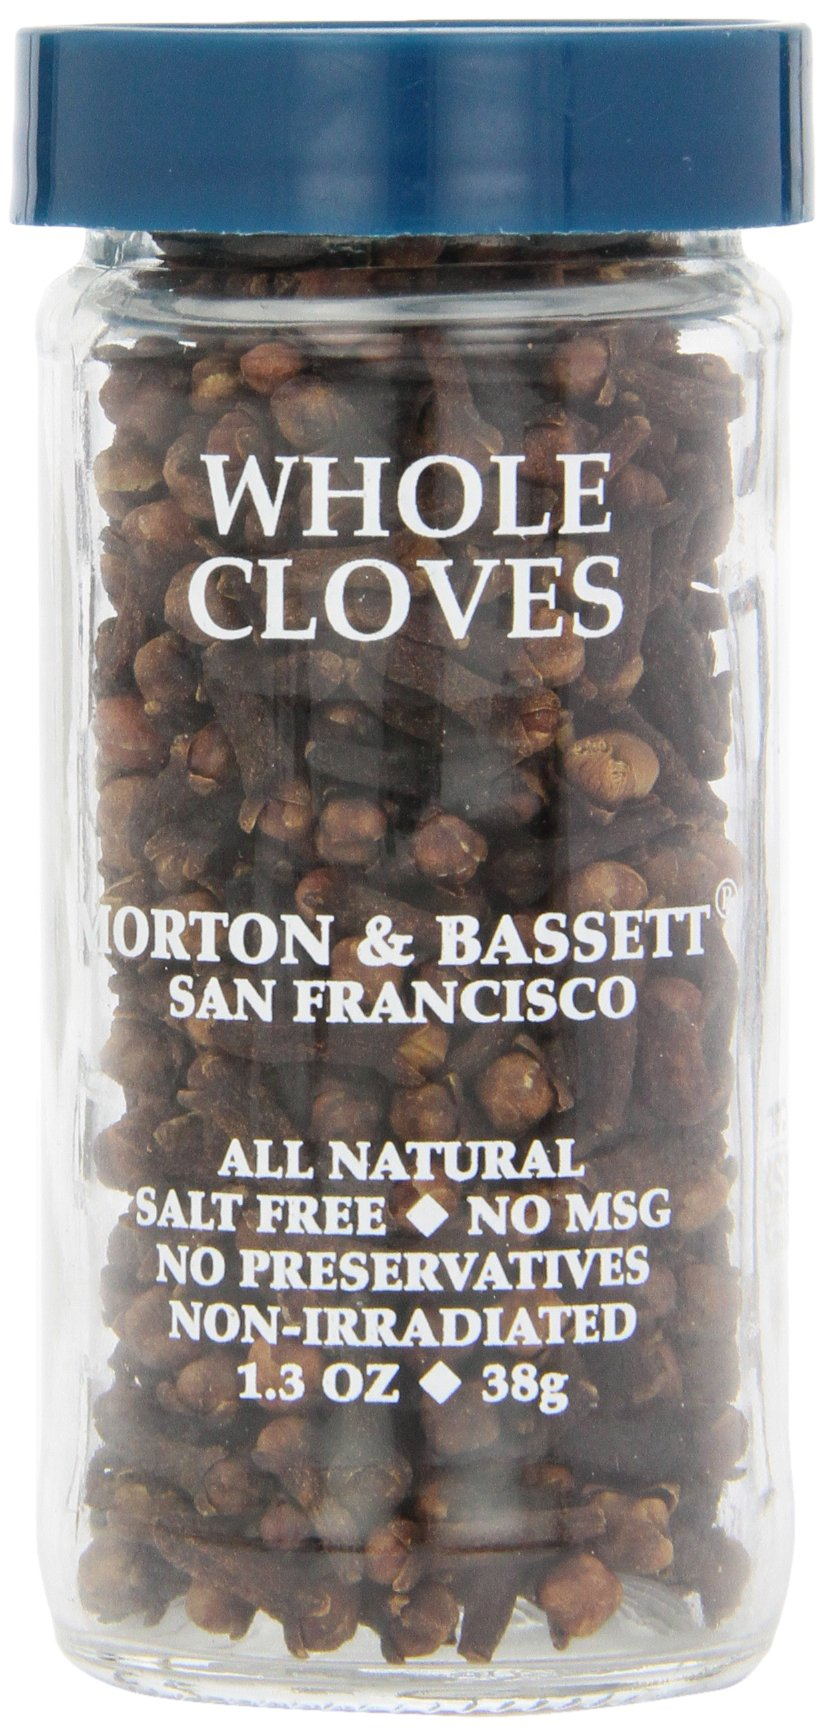 MORTON & BASSETT CLOVE WHOLE